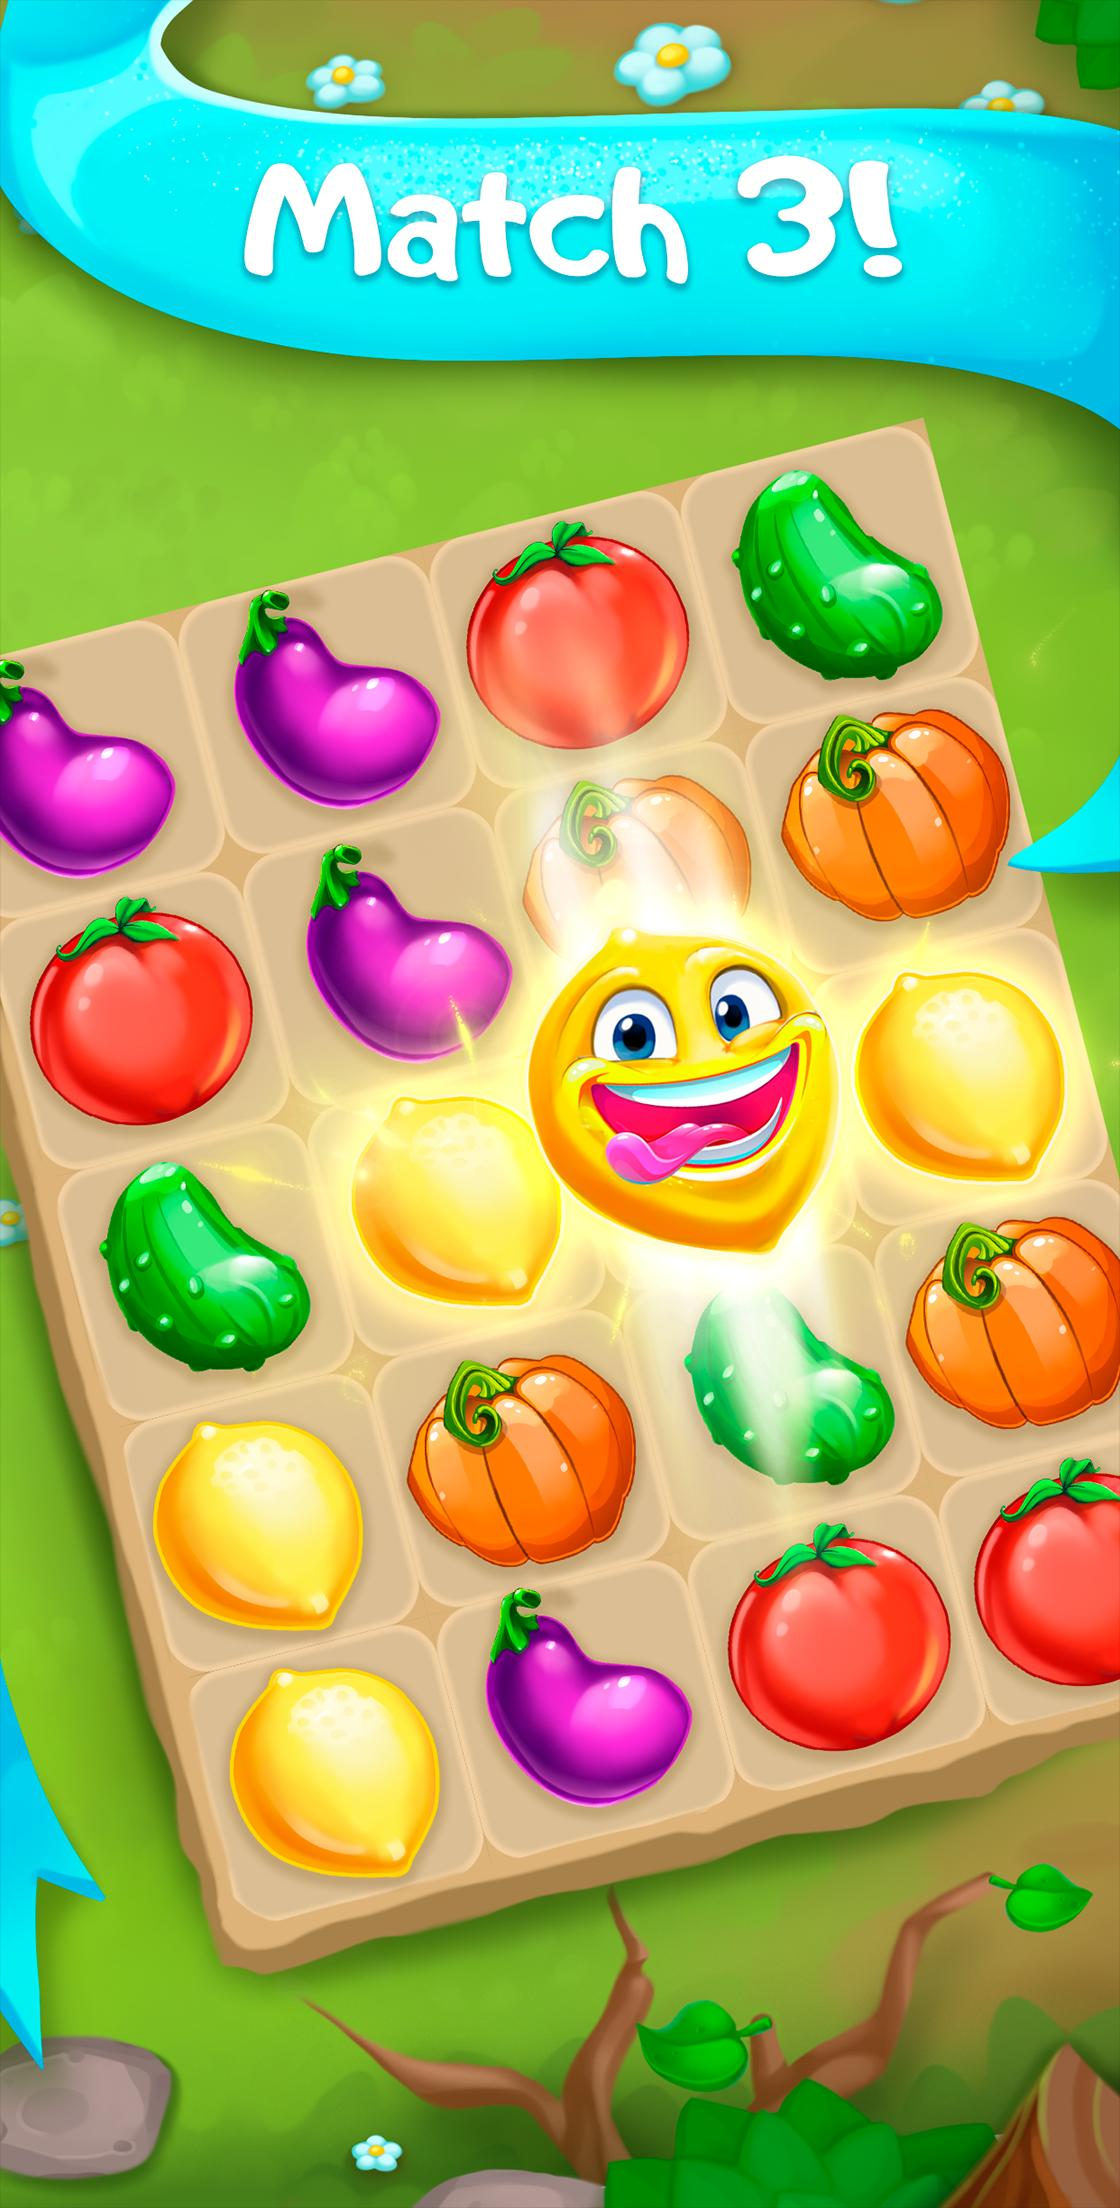 Funny Farm match 3 Puzzle game 1.53.0 Screenshot 1